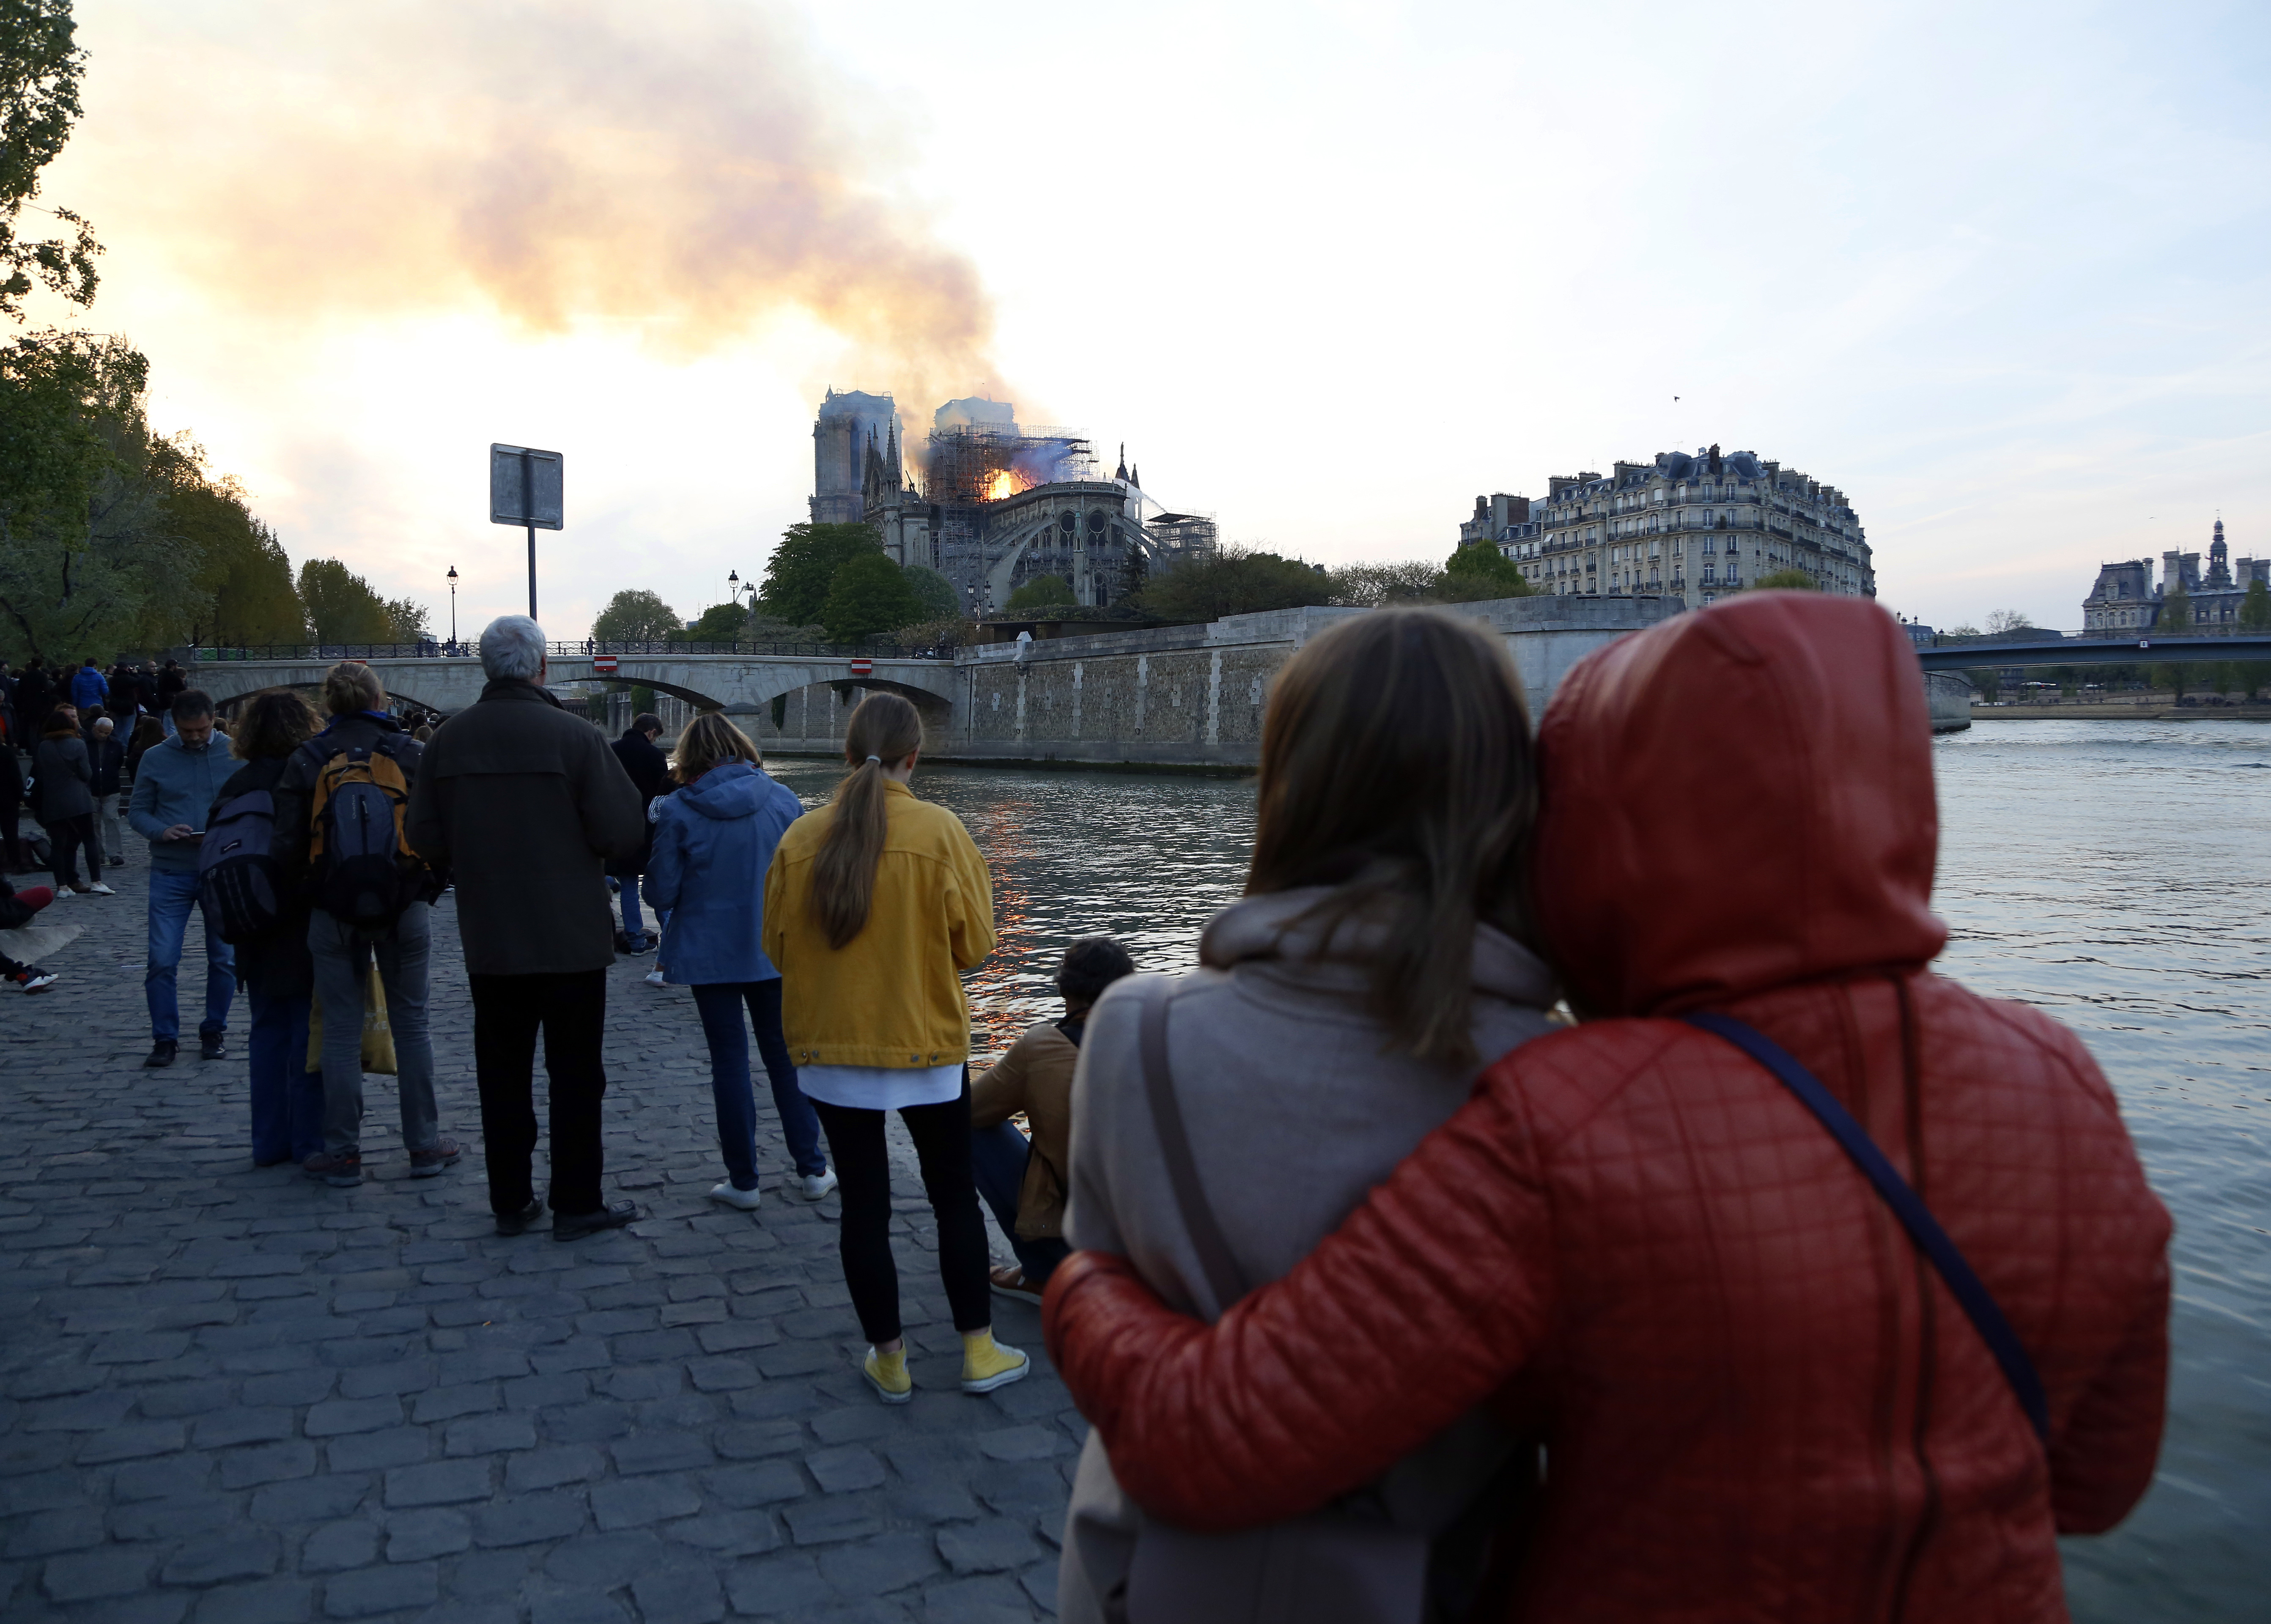 People watch as flames and smoke rise from Notre Dame cathedral as it burns in Paris, Monday, April 15, 2019.